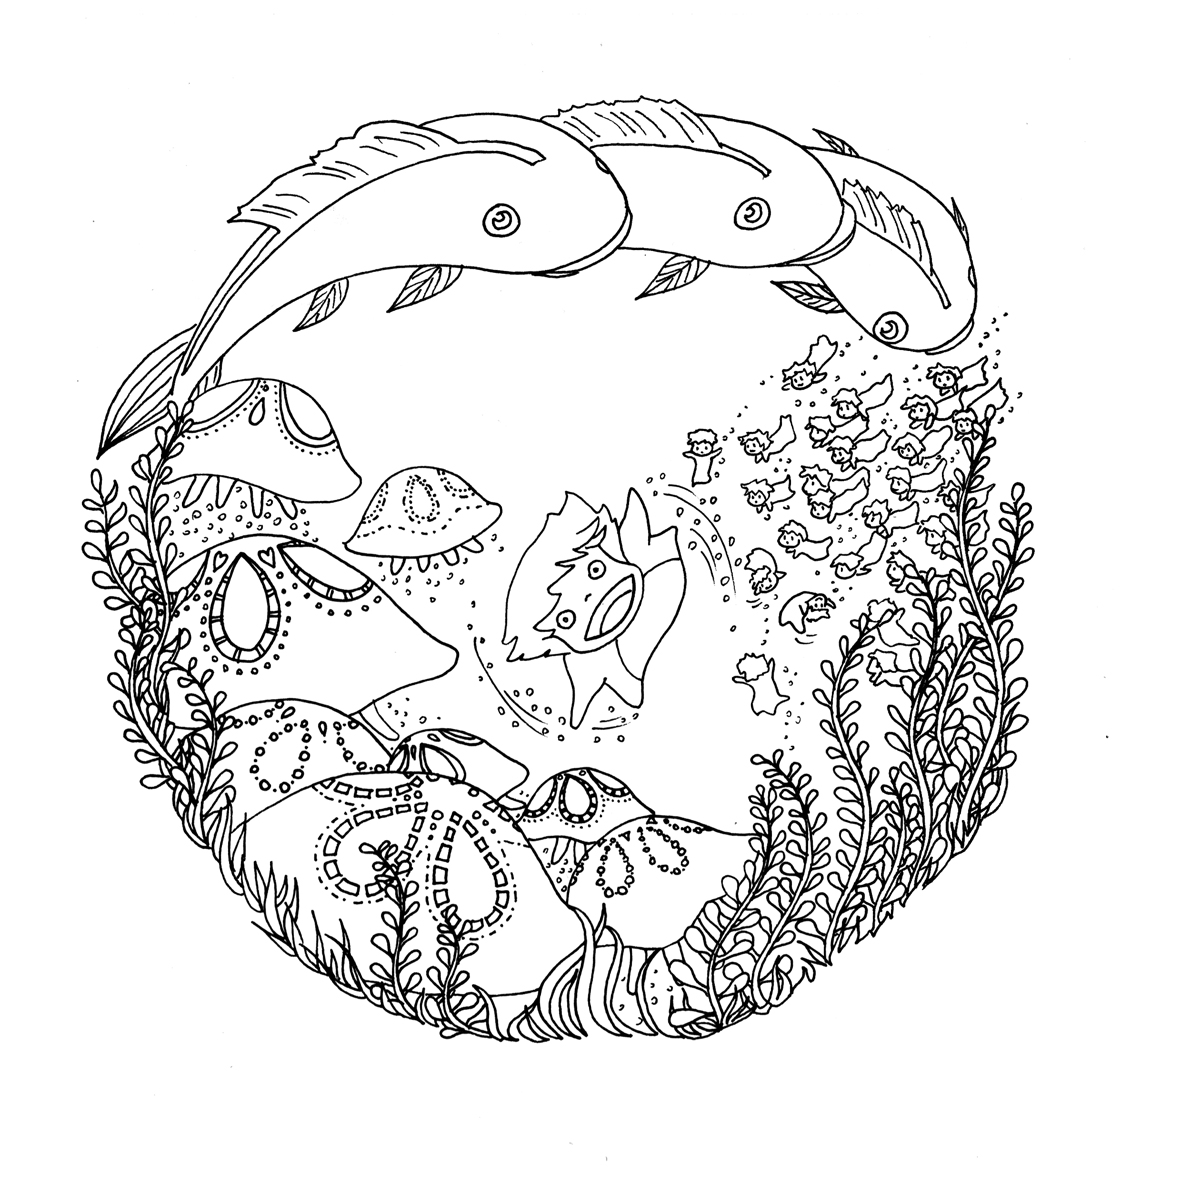 Ghibli le chocobo for Ponyo coloring pages to print